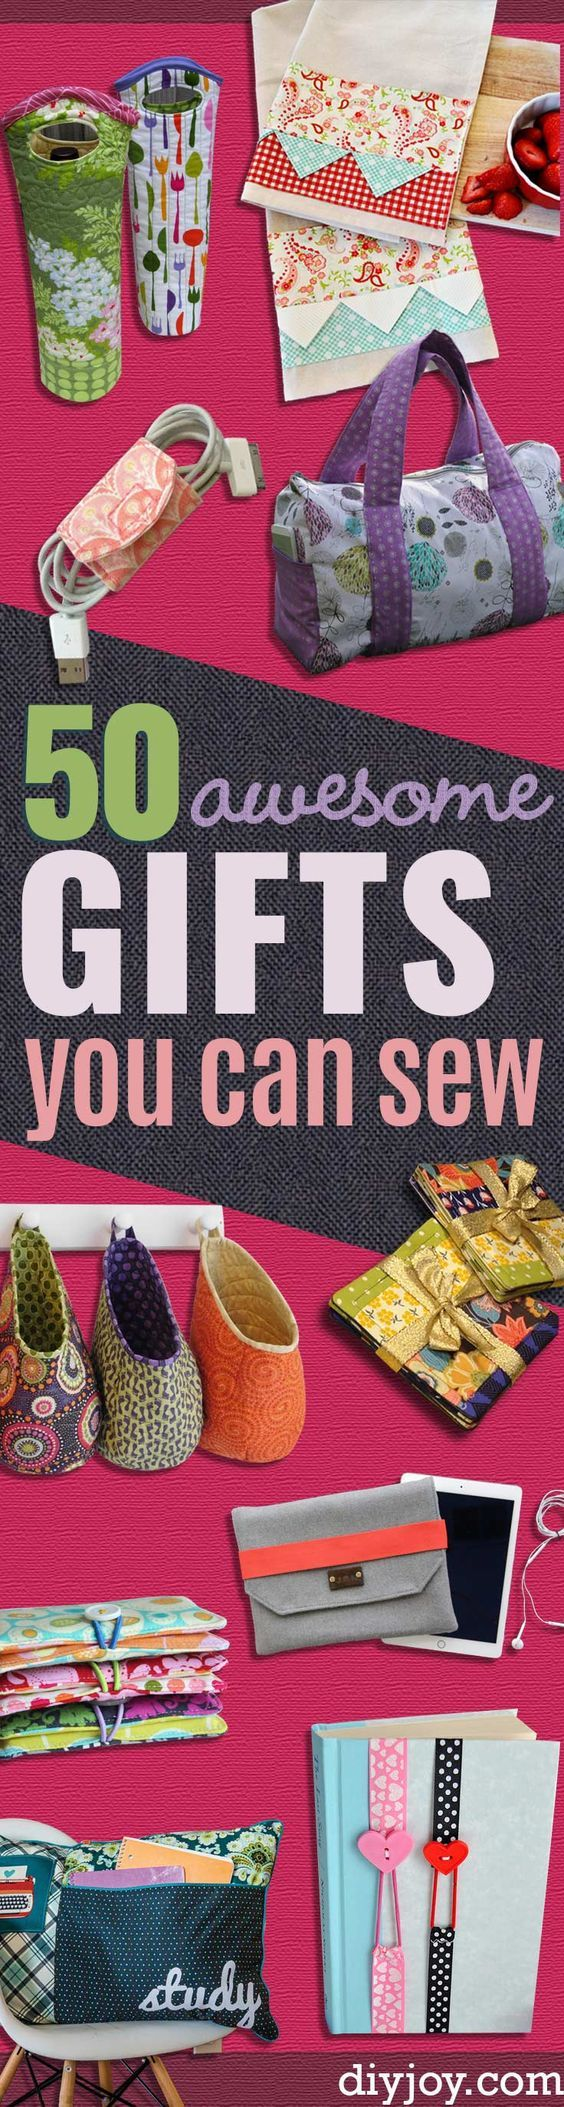 Baby Gifts For Mom From Husband : Men and babies presents for mom sewing on